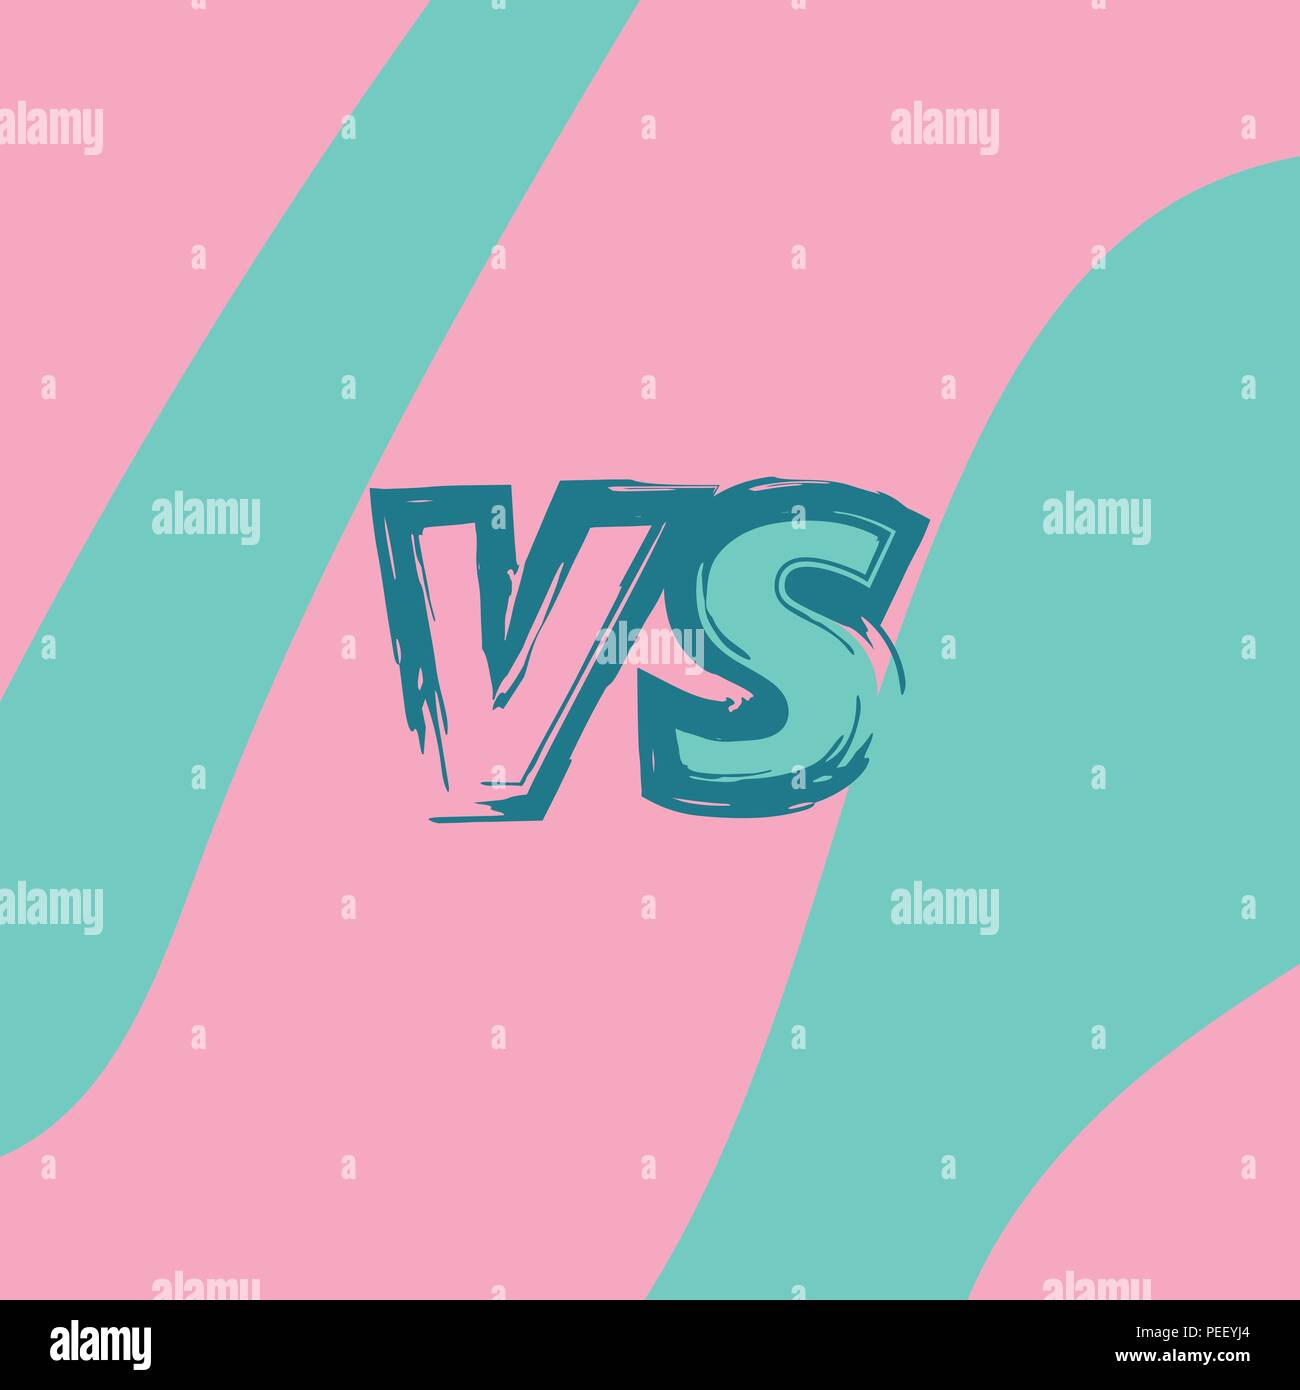 Versus Sign On Divided Wave Background Vs Screen Decorative